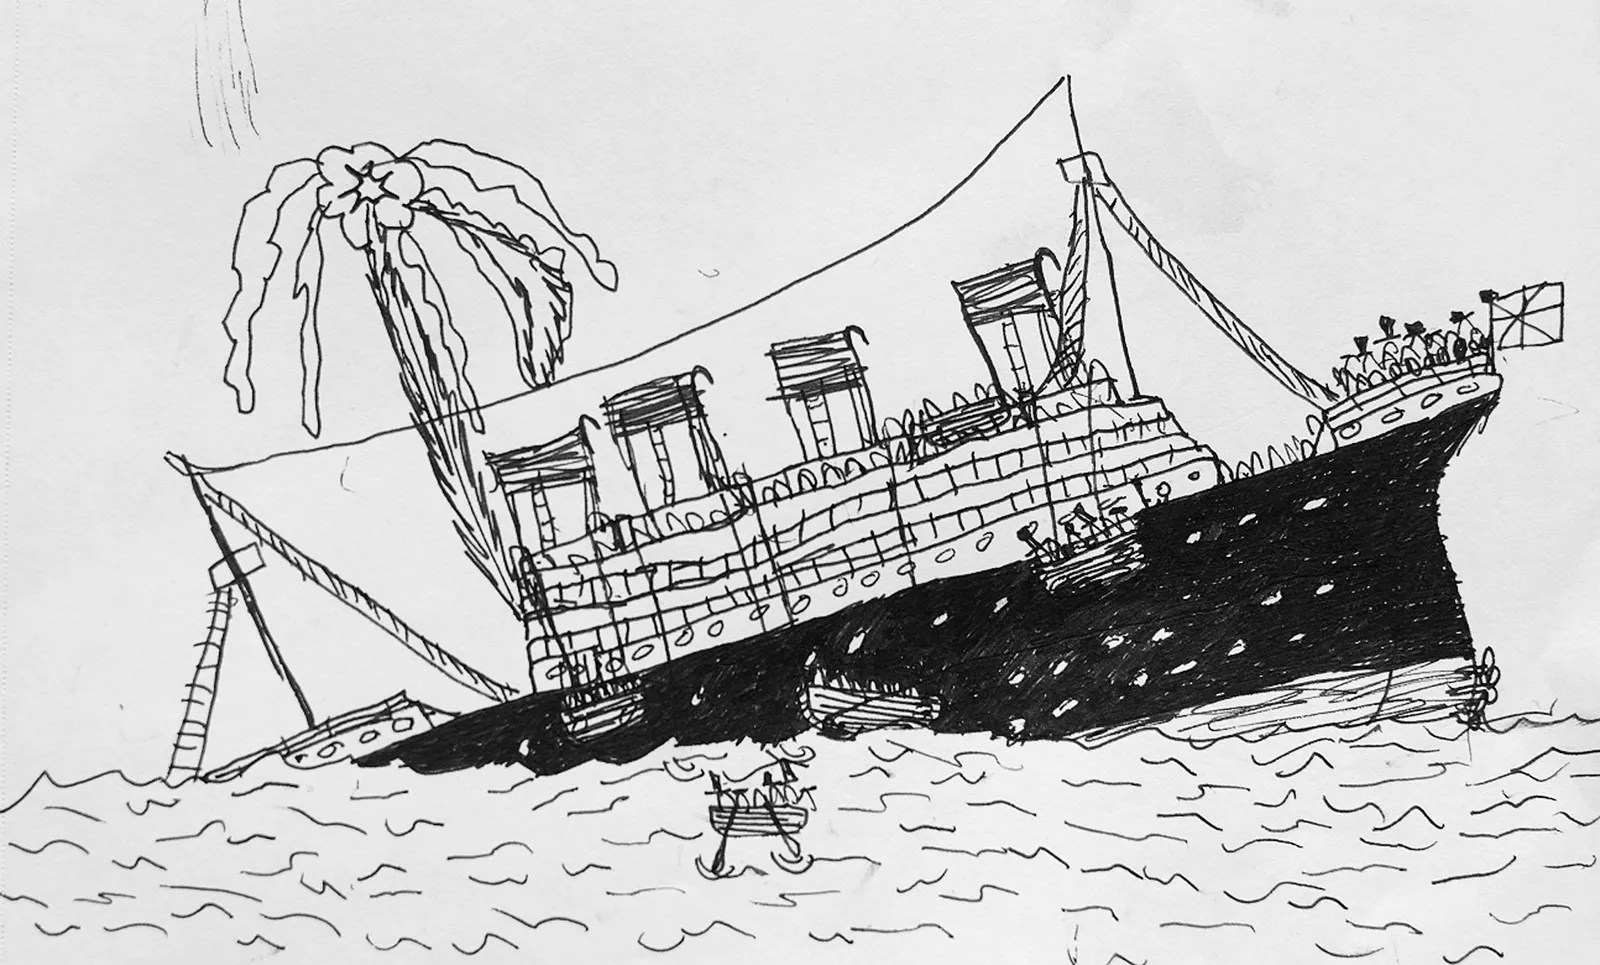 A Young Artist Confronts The Sinking Of The Titanic